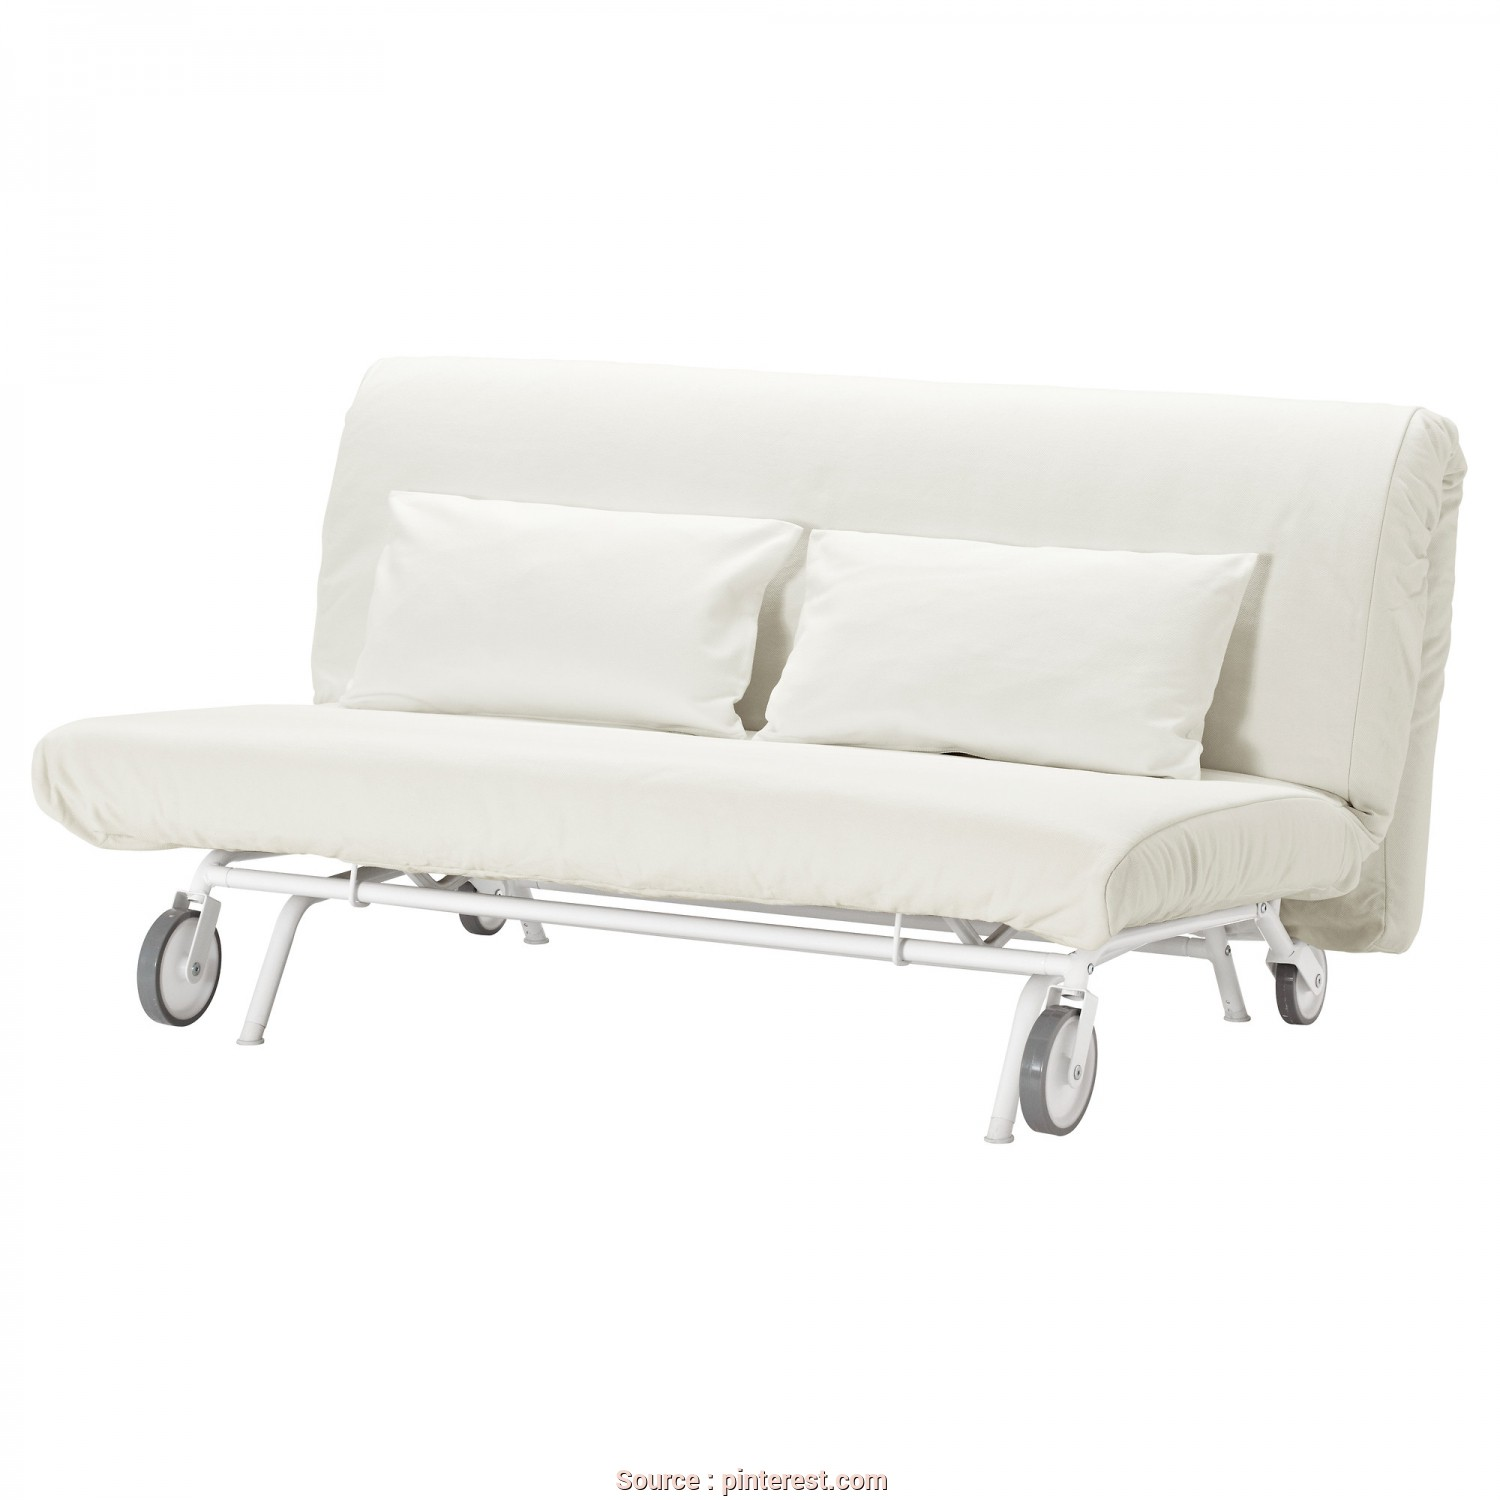 Vilasund Bettsofa Ikea, Loveable IKEA, IKEA PS LÖVÅS, Two-Seat Sofa-Bed, Gräsbo White,, Extra Covers To Alternate With Mean It&Apos;S Easy To Give Both Your Sofa, Room A, Look